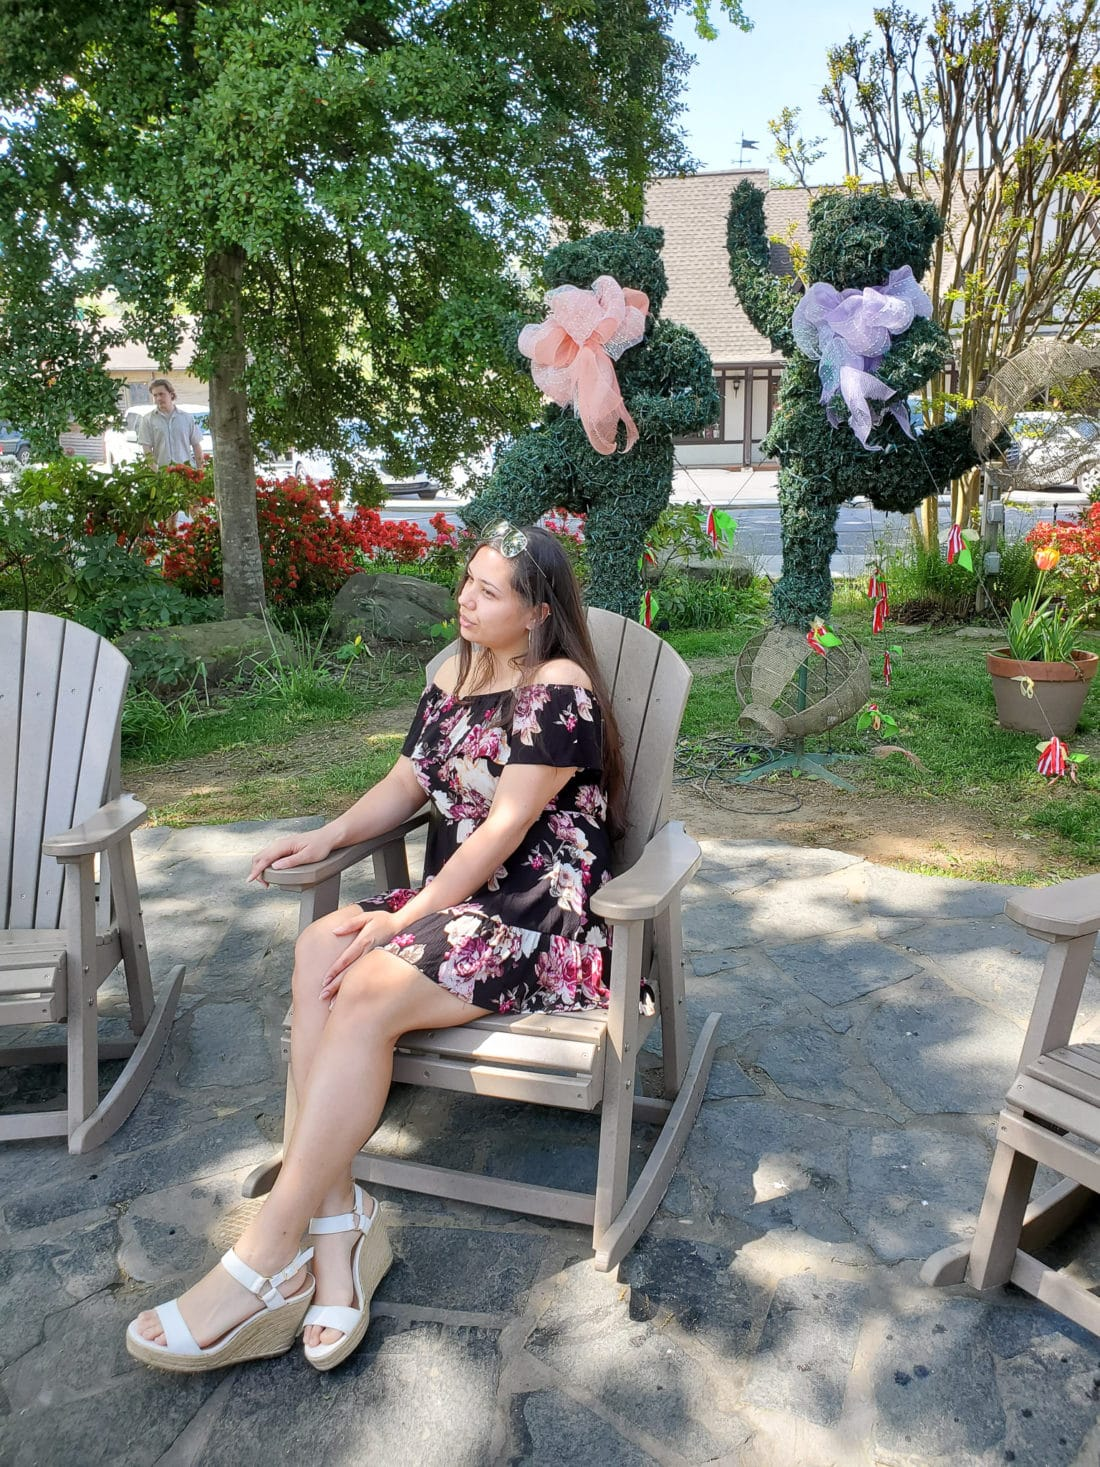 Jay's Style Black Booming Beauty Mini Dress Lounging. Jay shares her latest style for the season. Follow along as Jay shares all the fun and interesting outfits she loves in her newest blog feature Jay's Style.